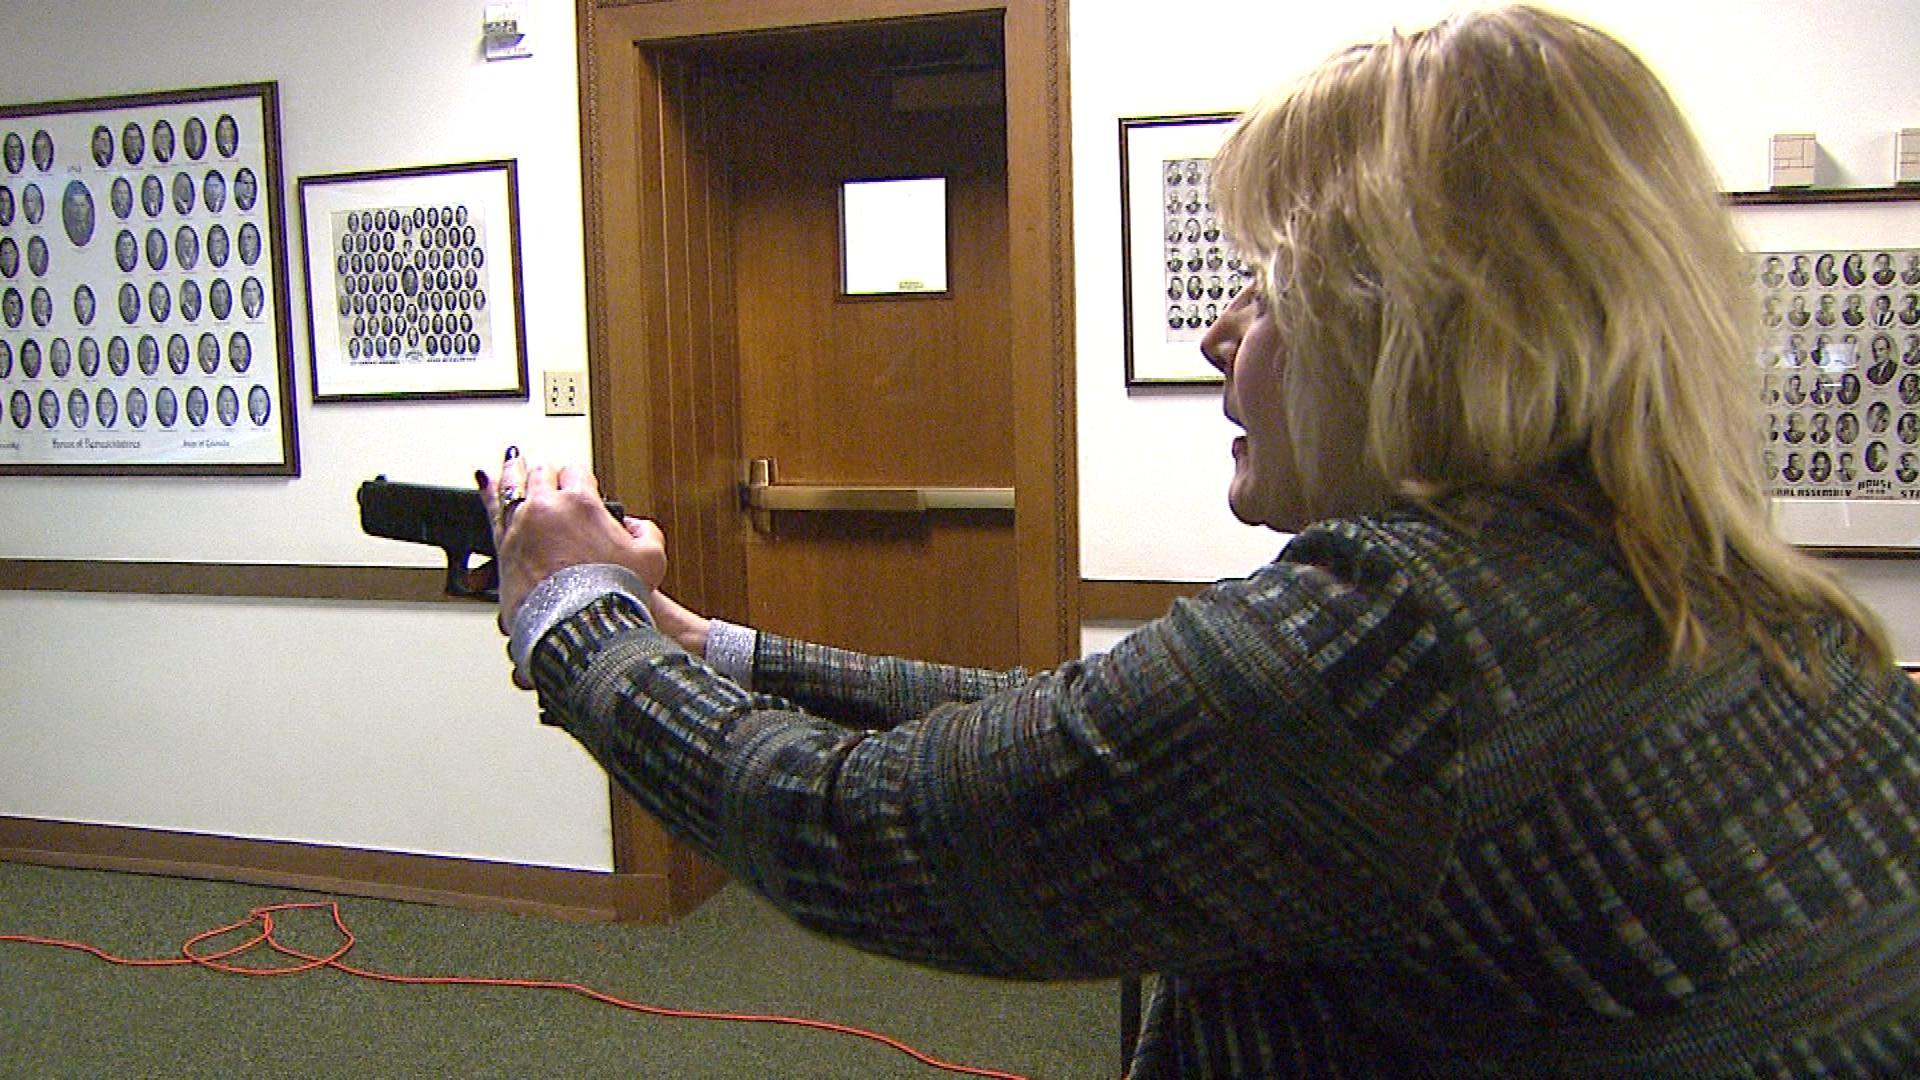 Attorney General Cynthia Coffman takes part in the training. (credit: CBS)